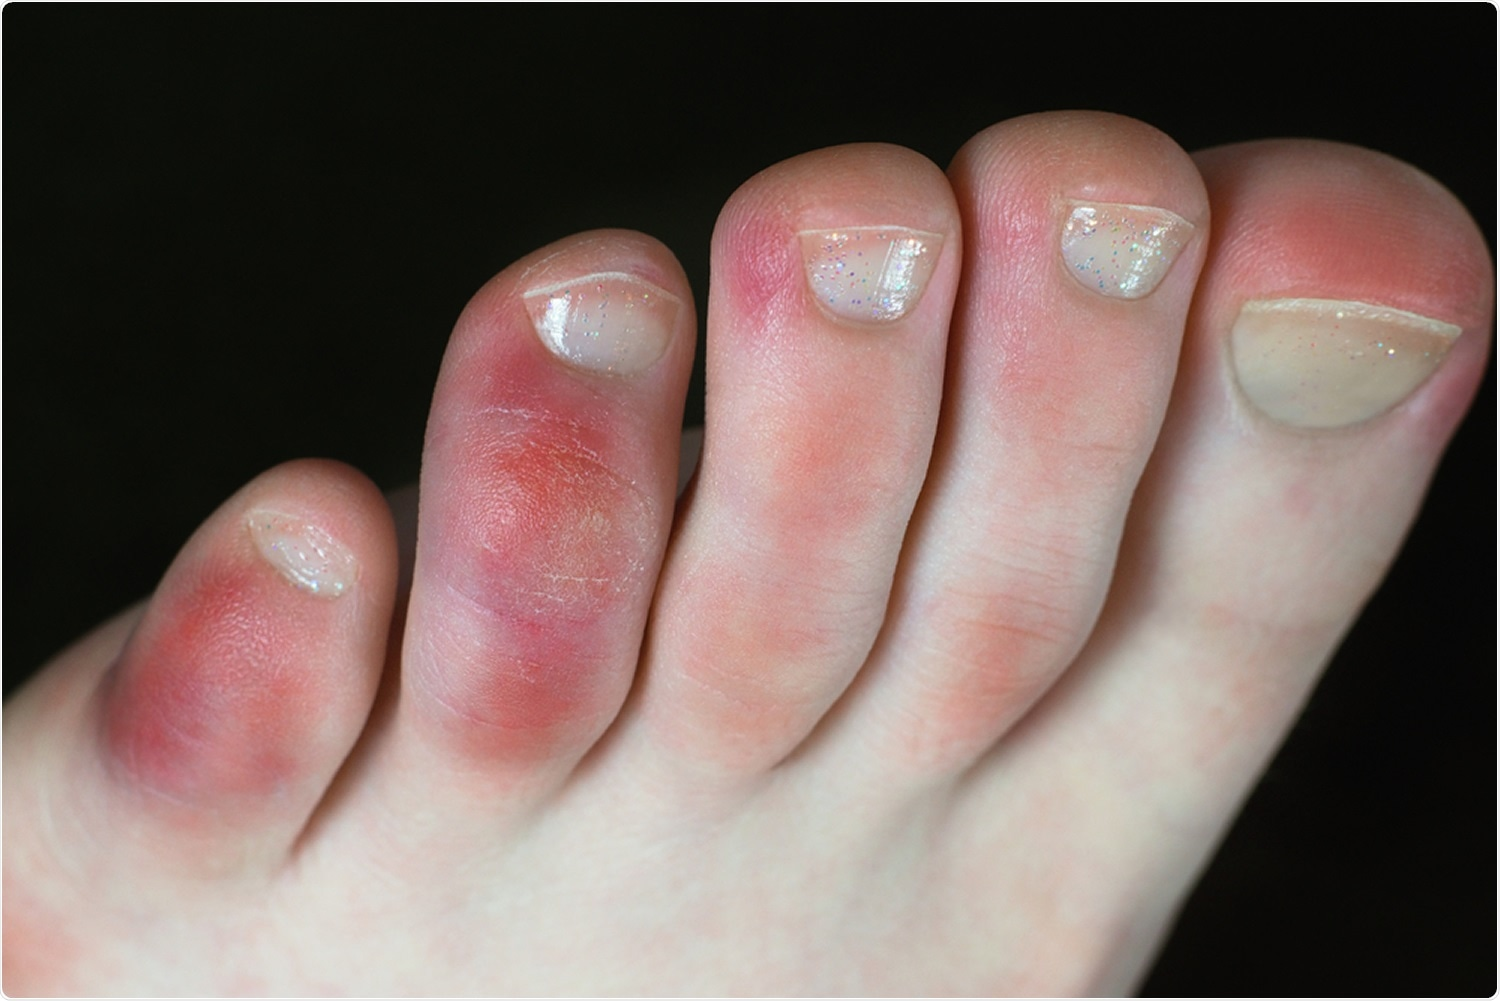 Review: Clinical Manifestations of COVID-19 in the Feet: A Review of Reviews. COVID toes: Image Credit: Tunatura / Shutterstock